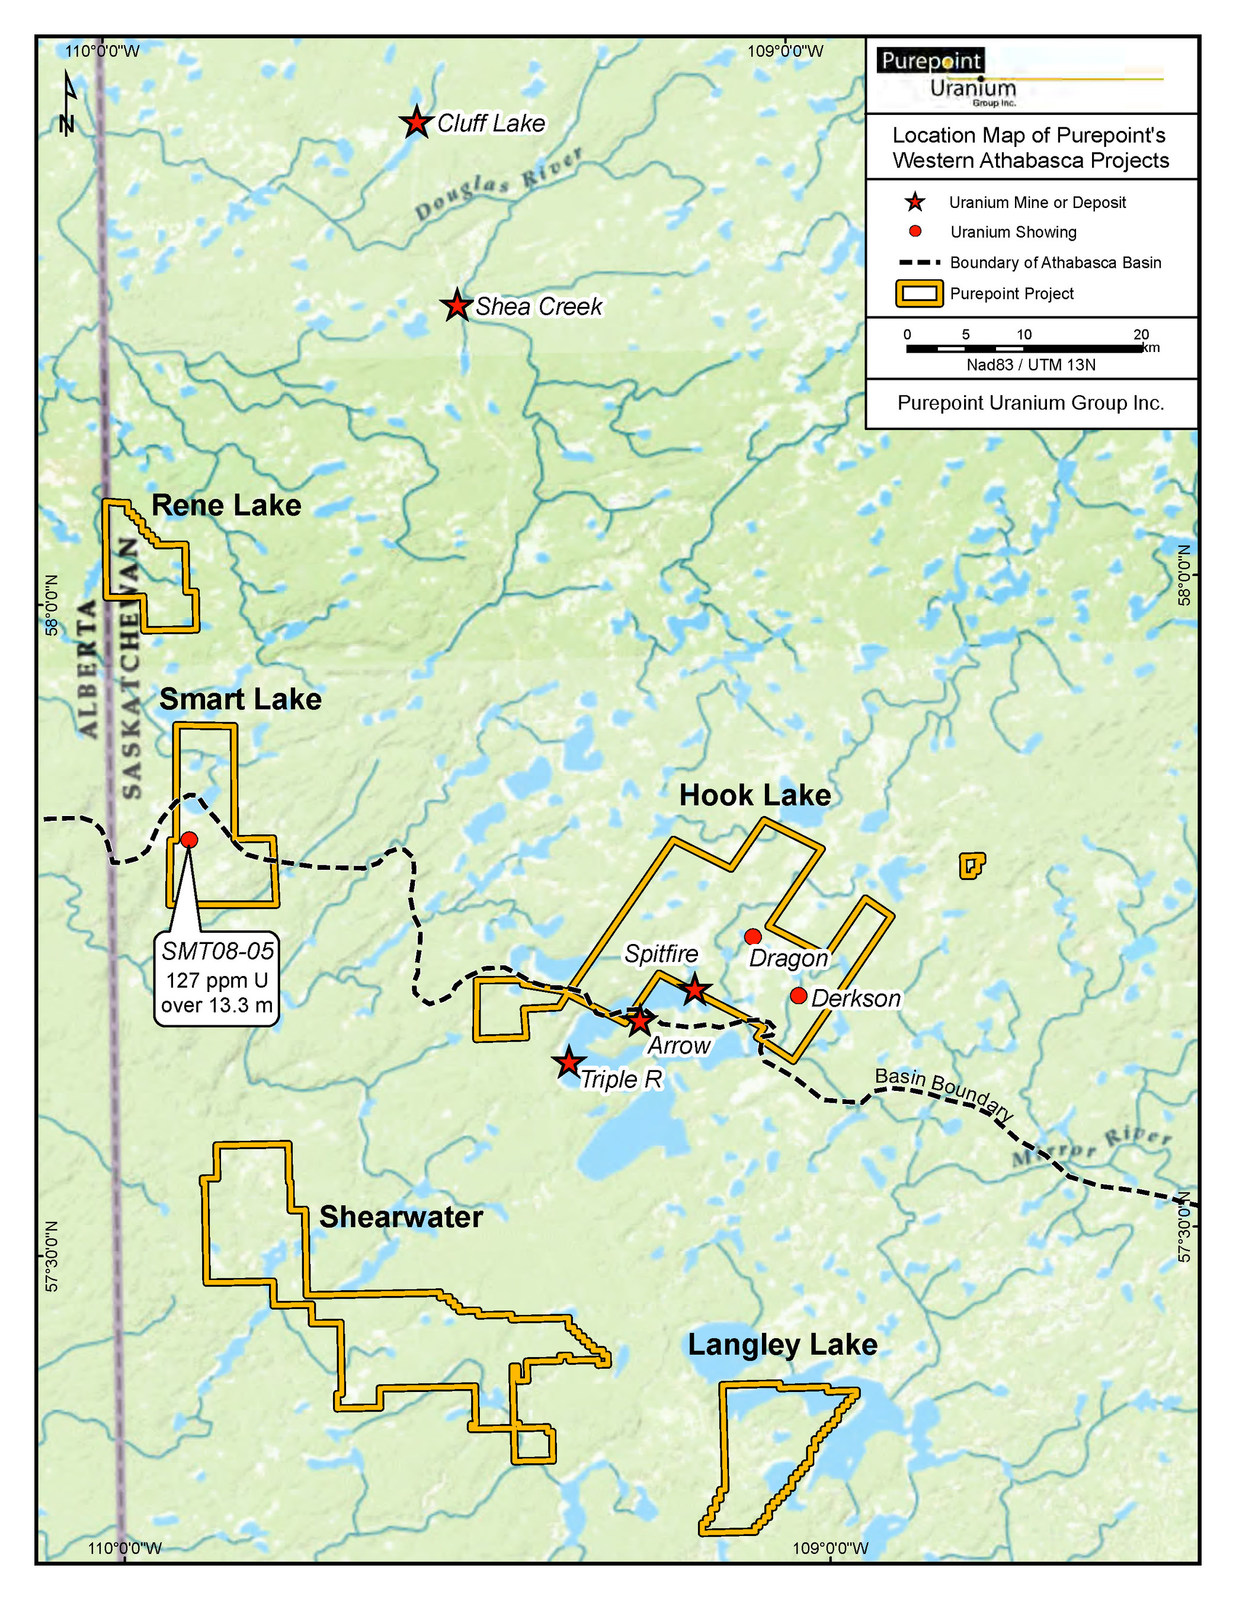 Location Map of Purepoint's Western Athabasca Projects